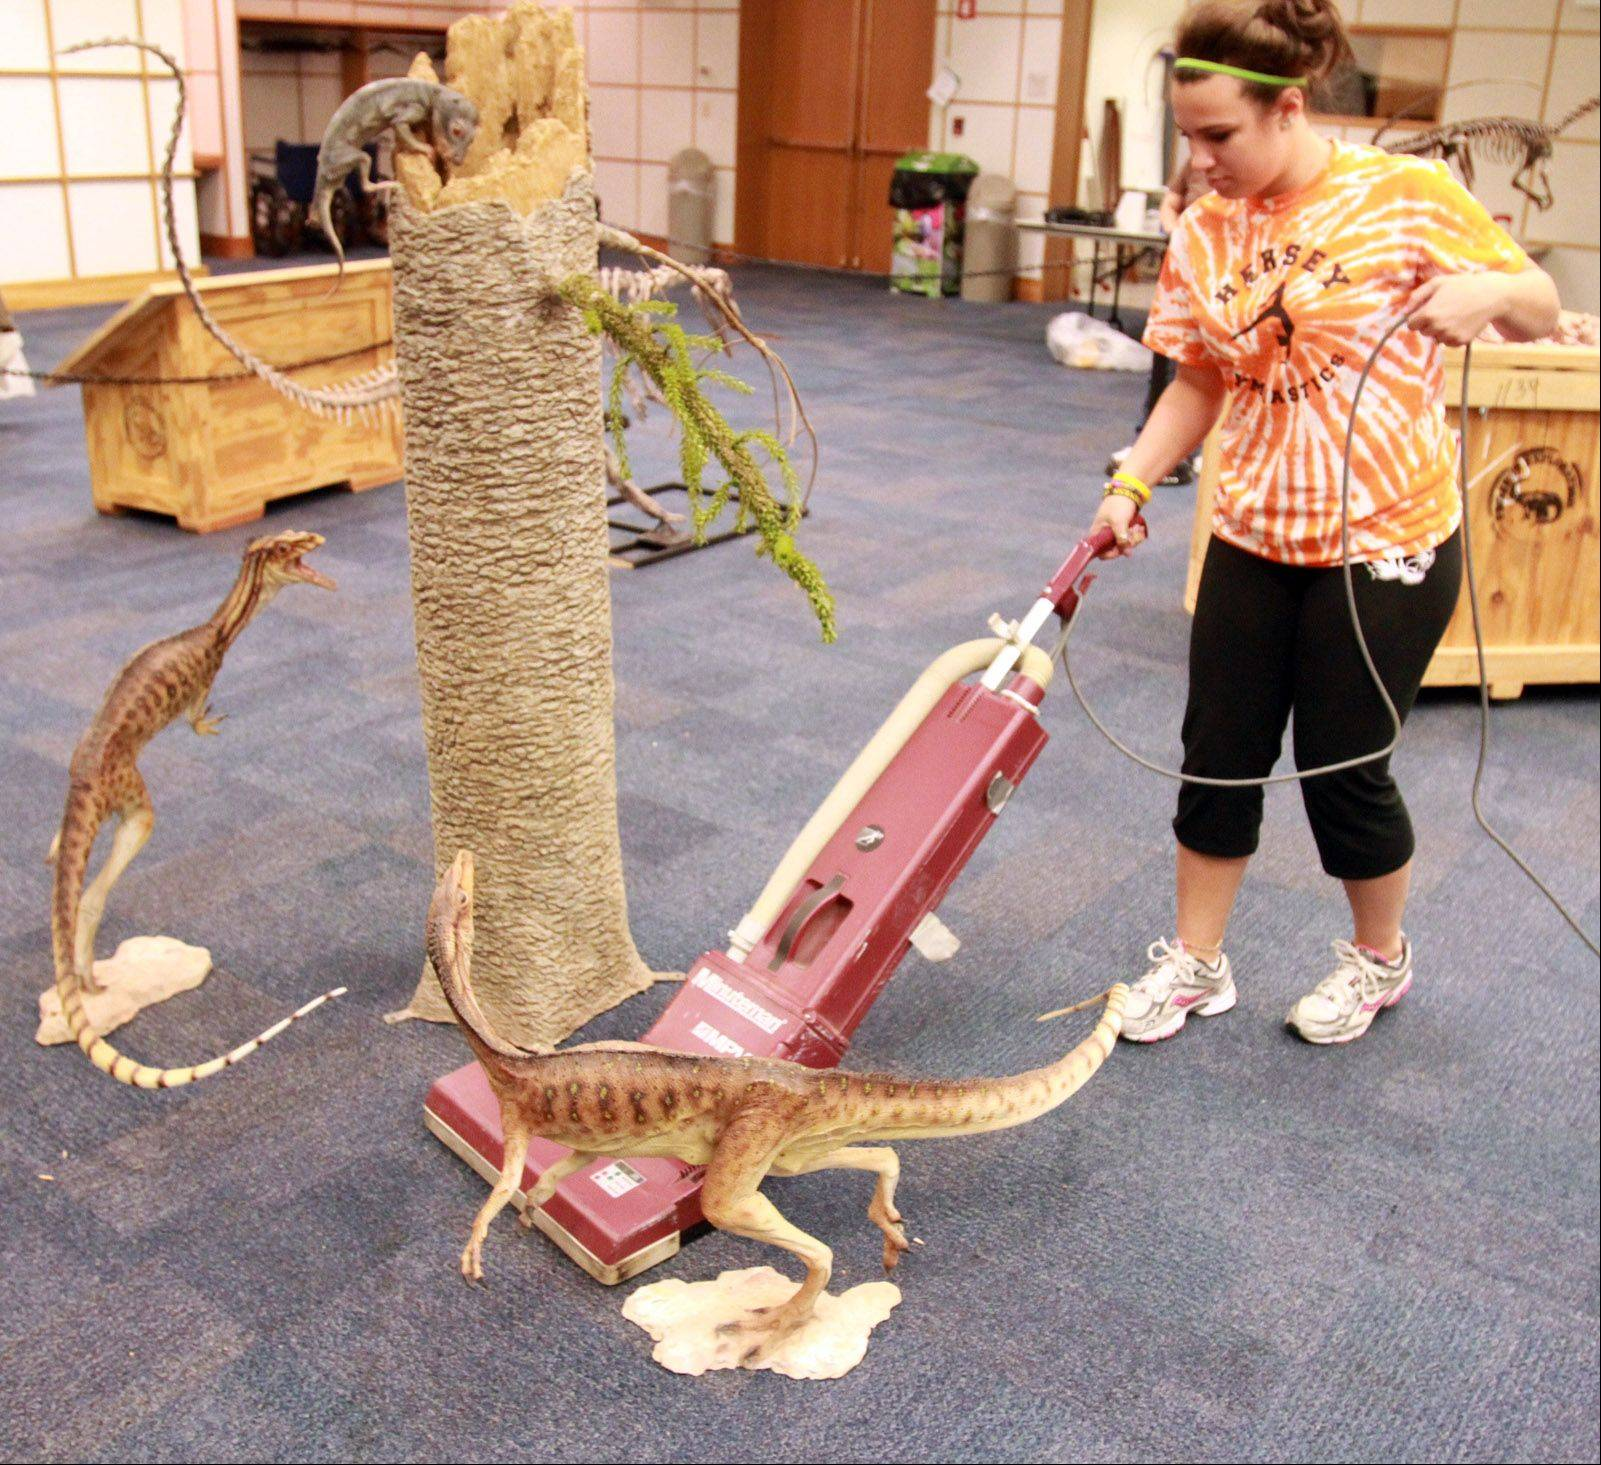 Volunteer Elizabeth Curley, 16, of Arlington Heights, vacuums around two flesh replica Eorapotors.